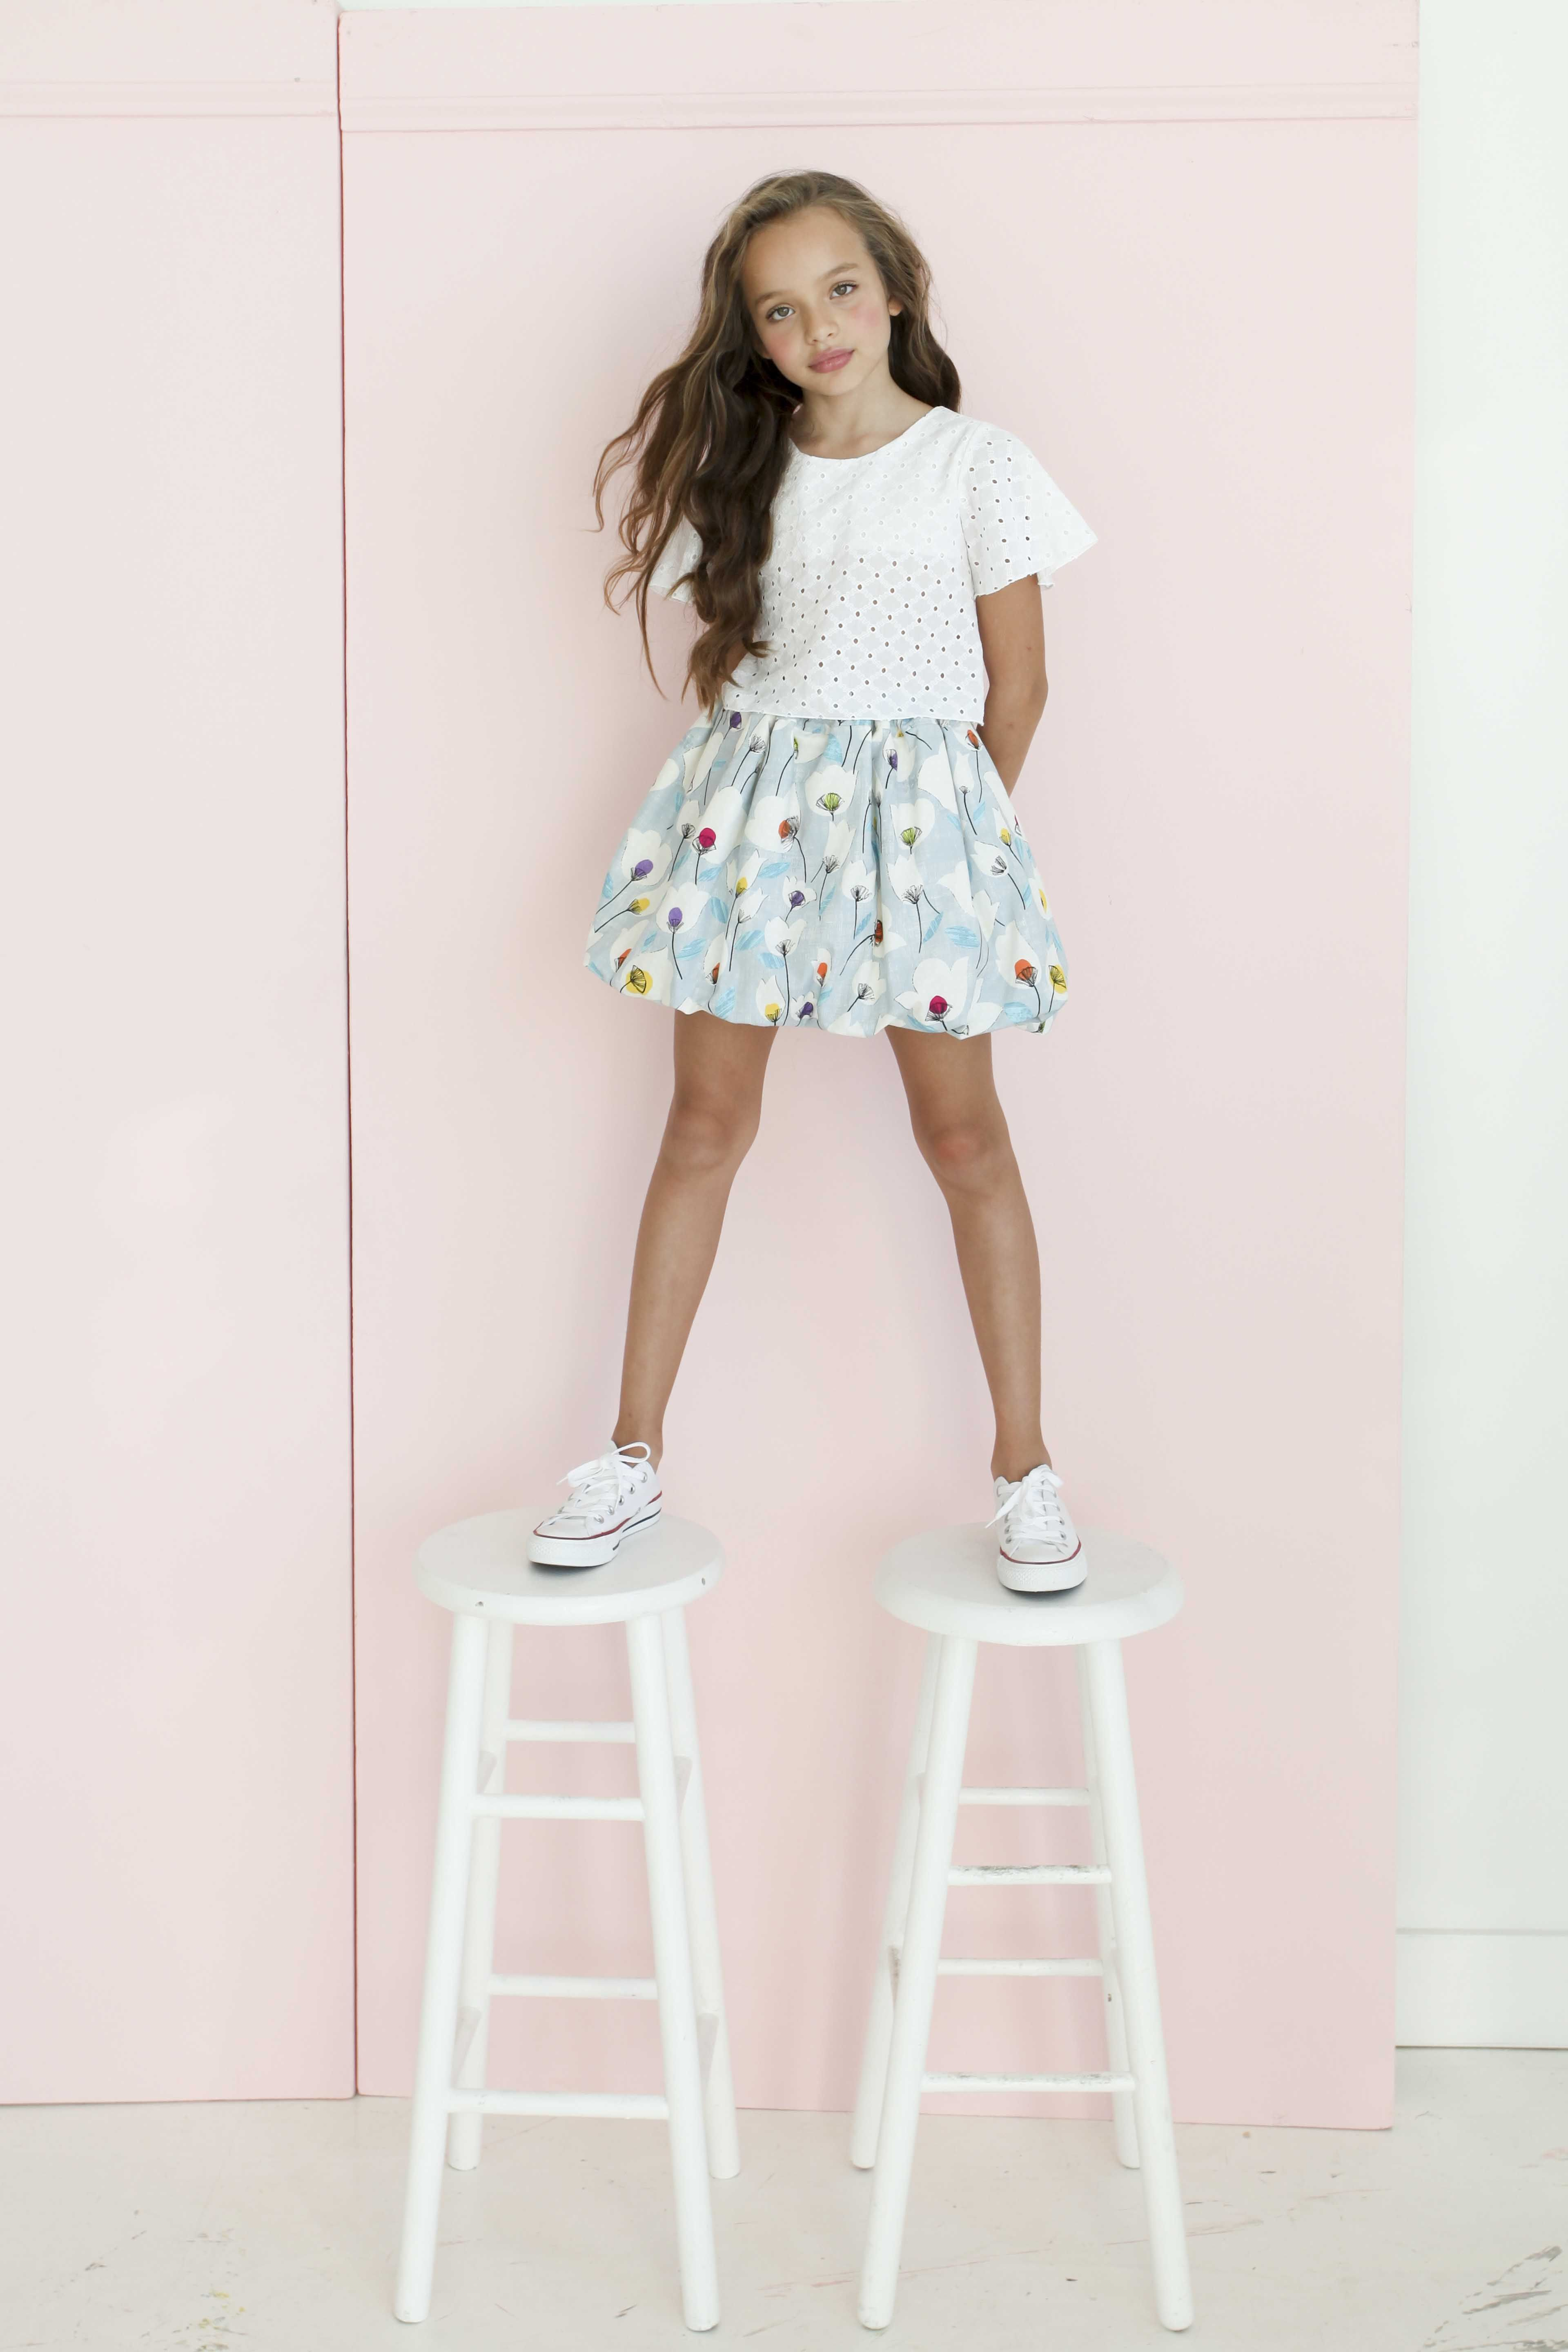 buy popular 3b43e 58f50 Mary at Zuri Models for Aria Kids by LEE CLOWER PHOTOGRAPHY pastel spring  looks tween fashion